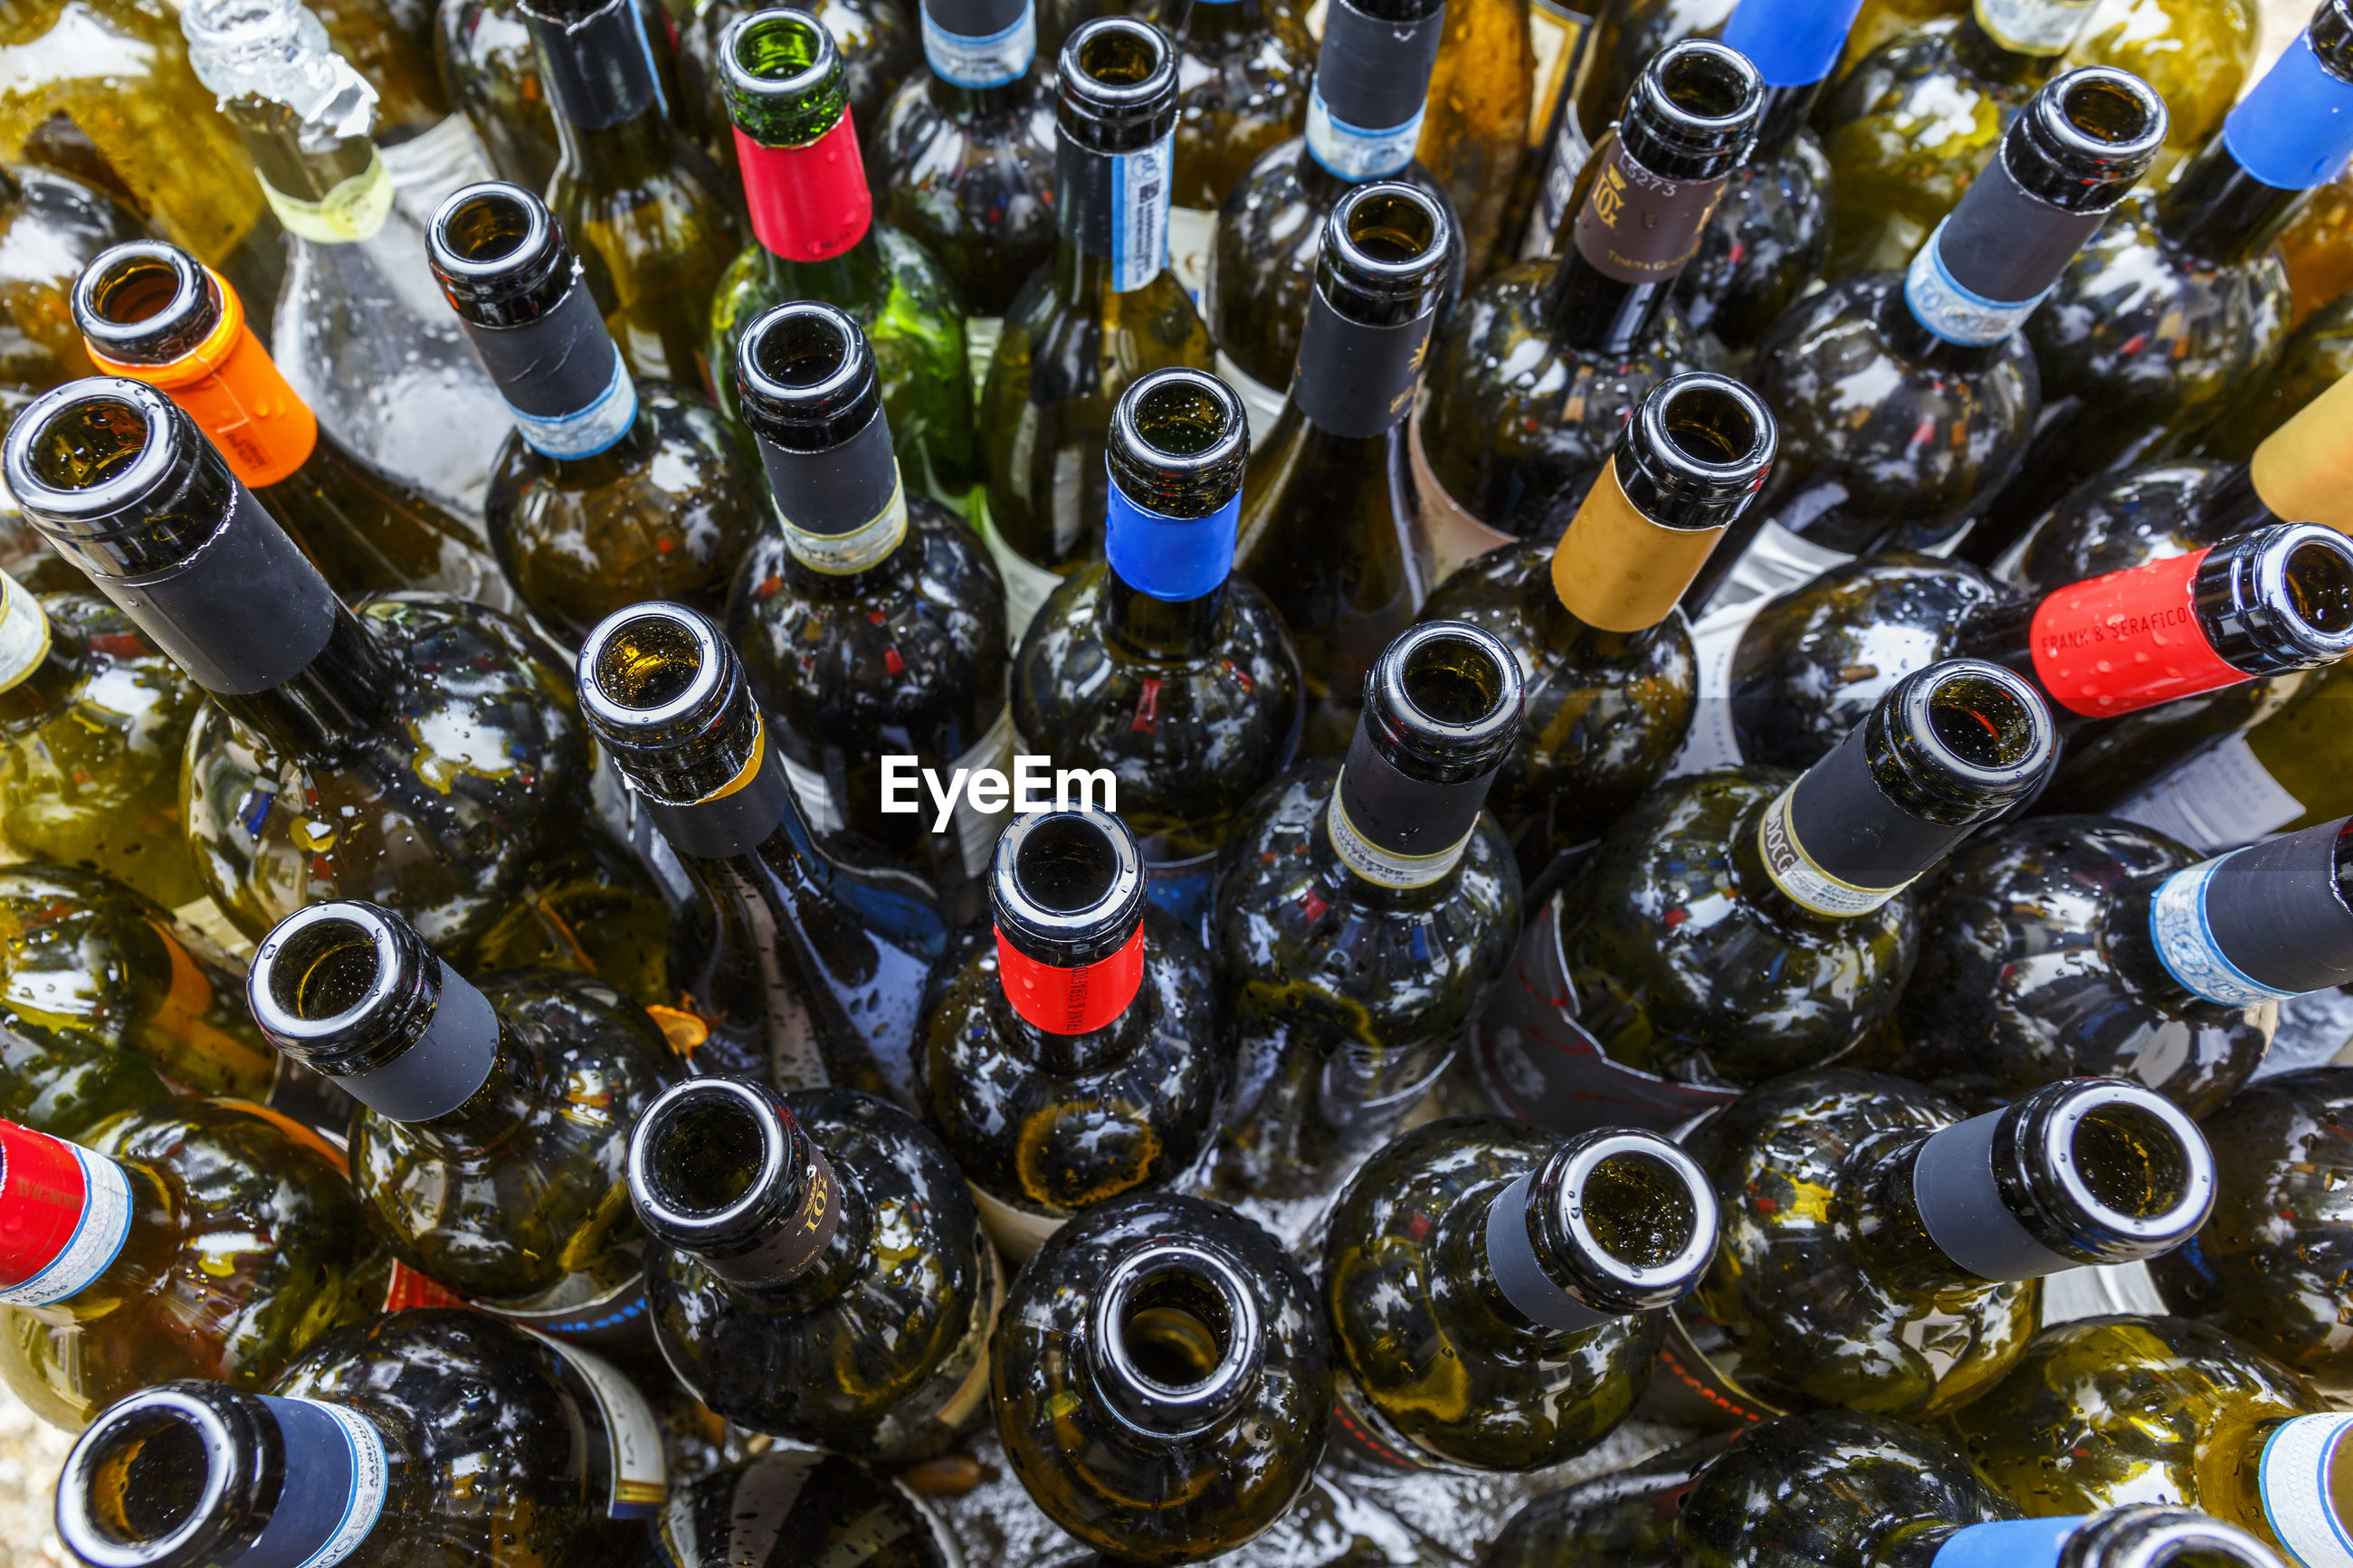 Wine bottles to be recycled